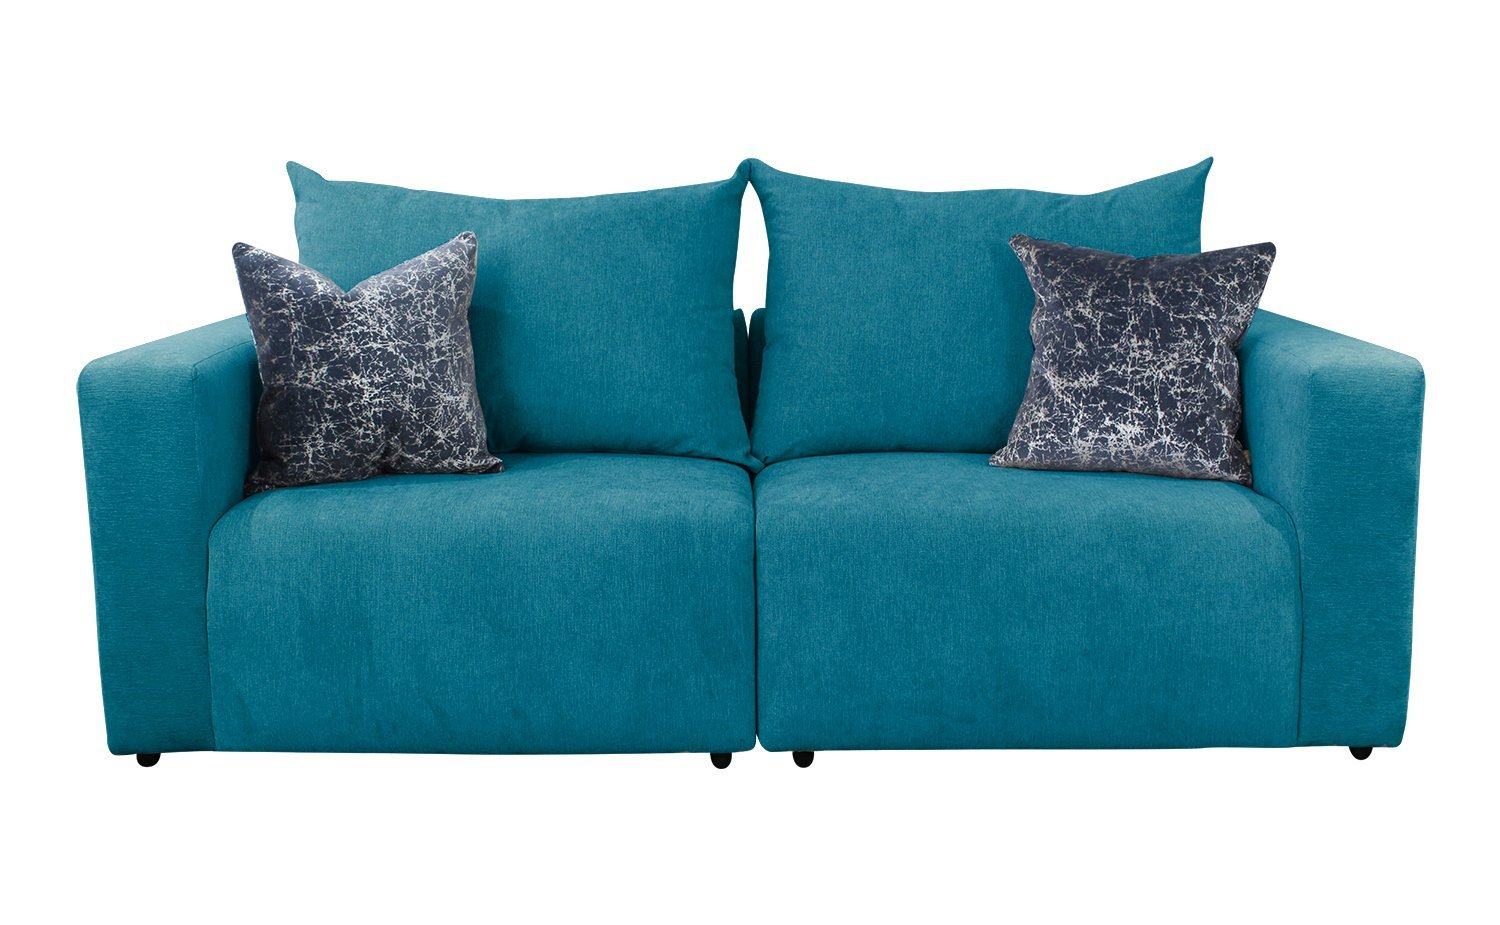 Pulse 3-Seater Sofa - Teal